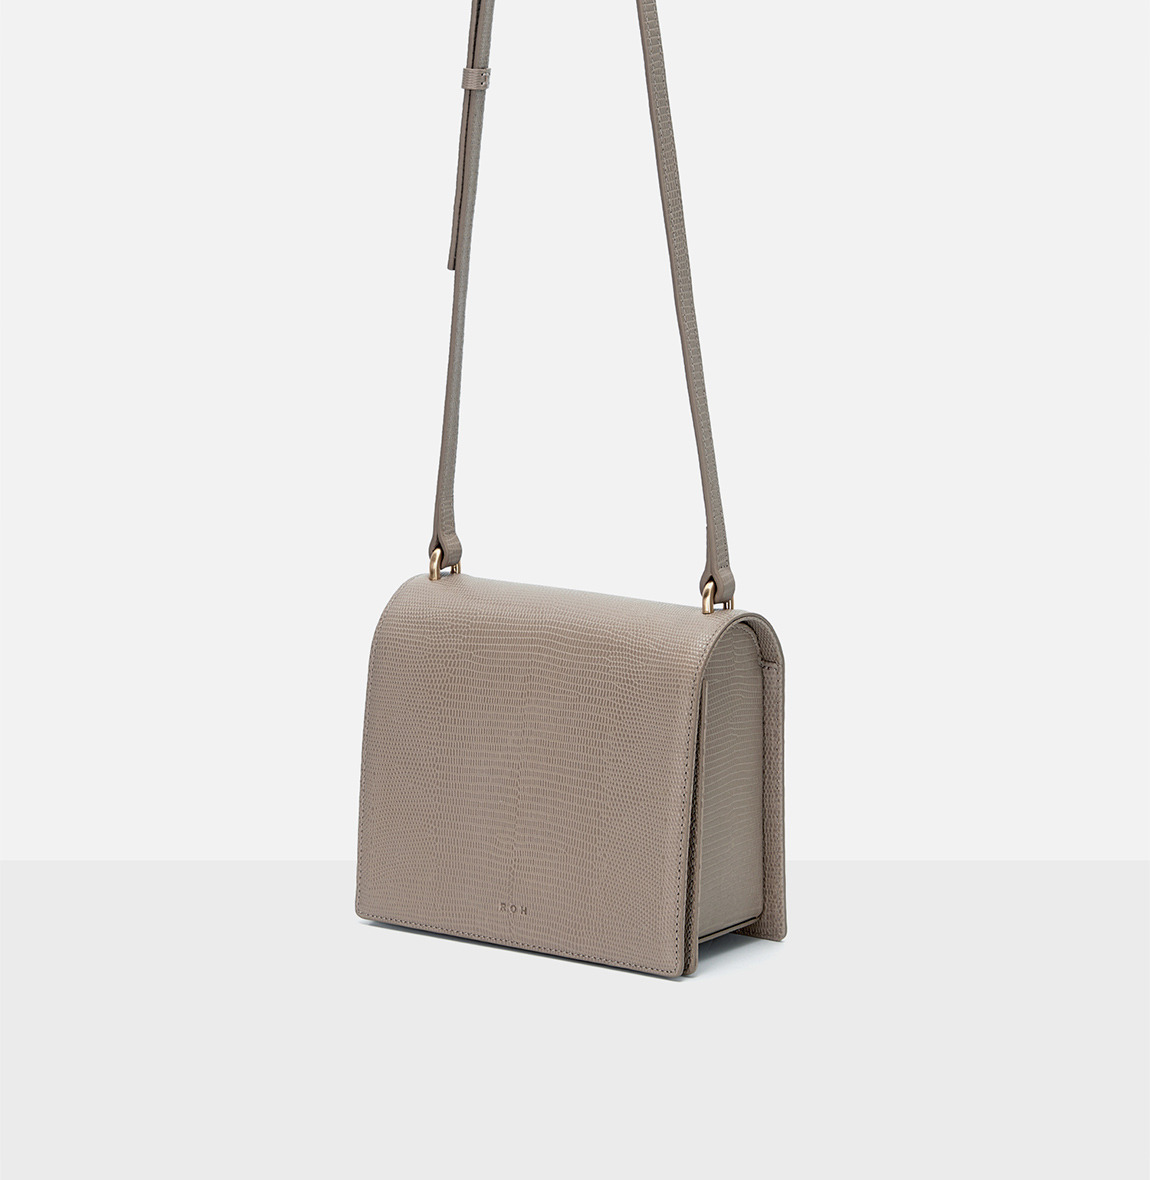 Caddy small shoulder bag Beige Lizard pattern